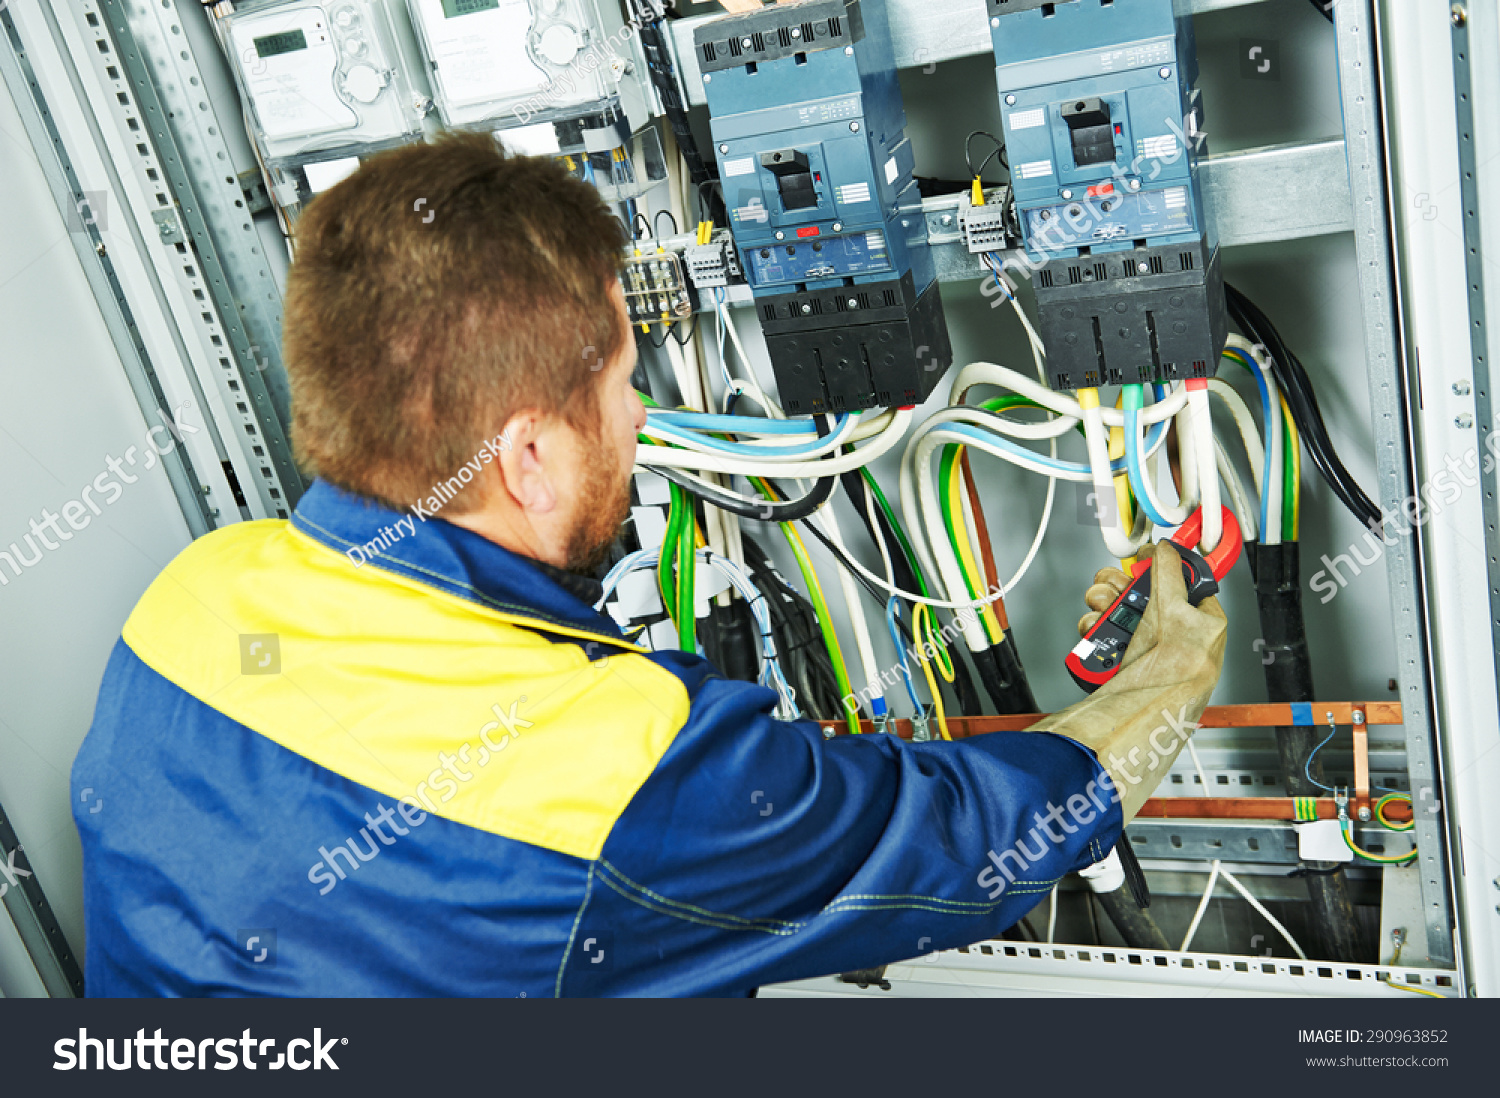 Adult Electrician Builder Engineer Making Electrical Stock Photo Wiring A Fuse Board Measure With Equipment In Fuseboard